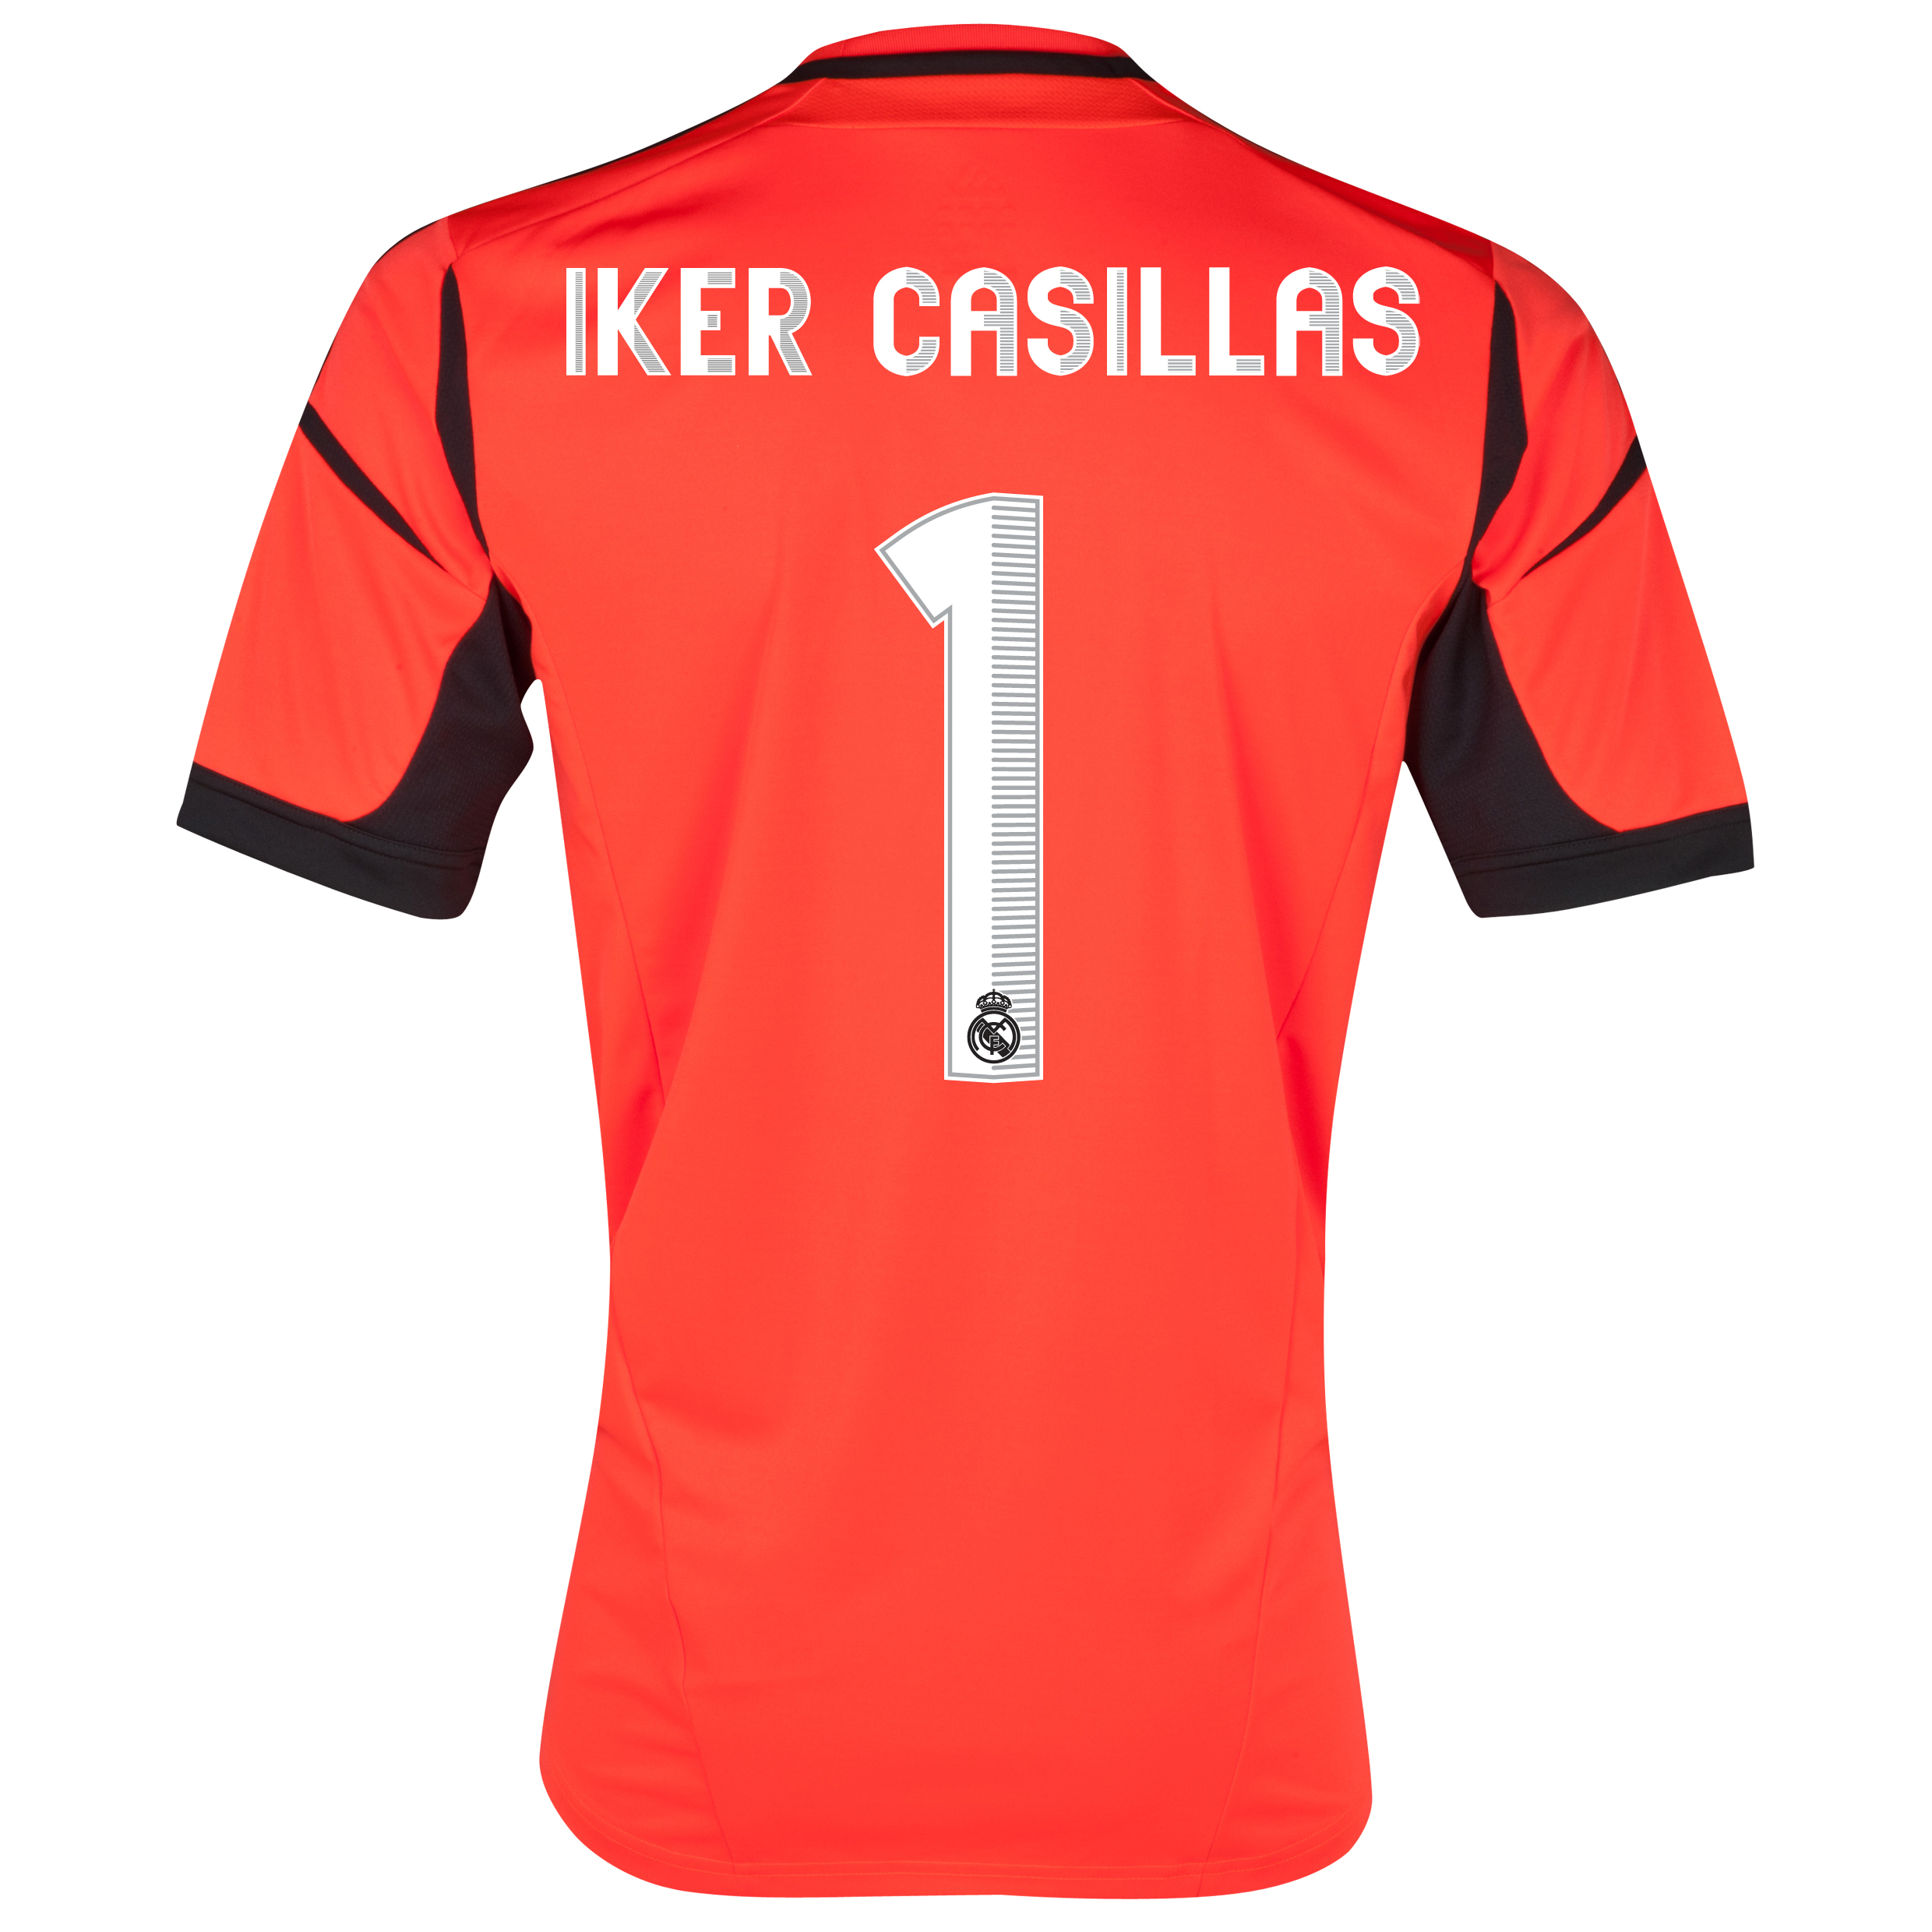 Real Madrid Home Goalkeeper Shirt 2012/13 with Iker Casillas 1 printing